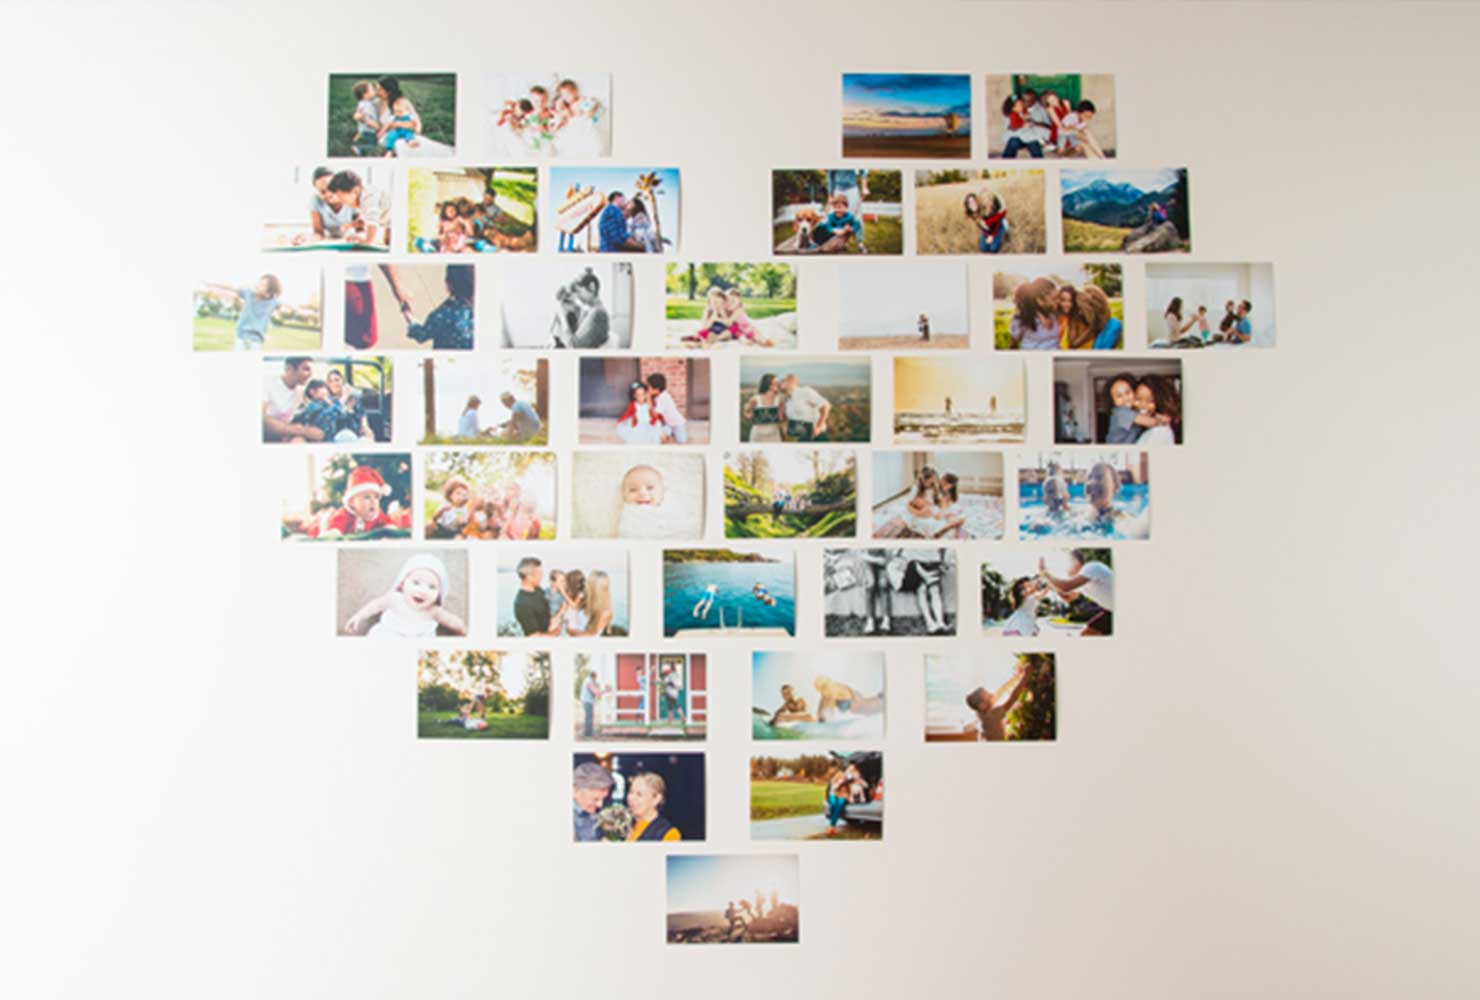 photos arranged in the shape of a heart